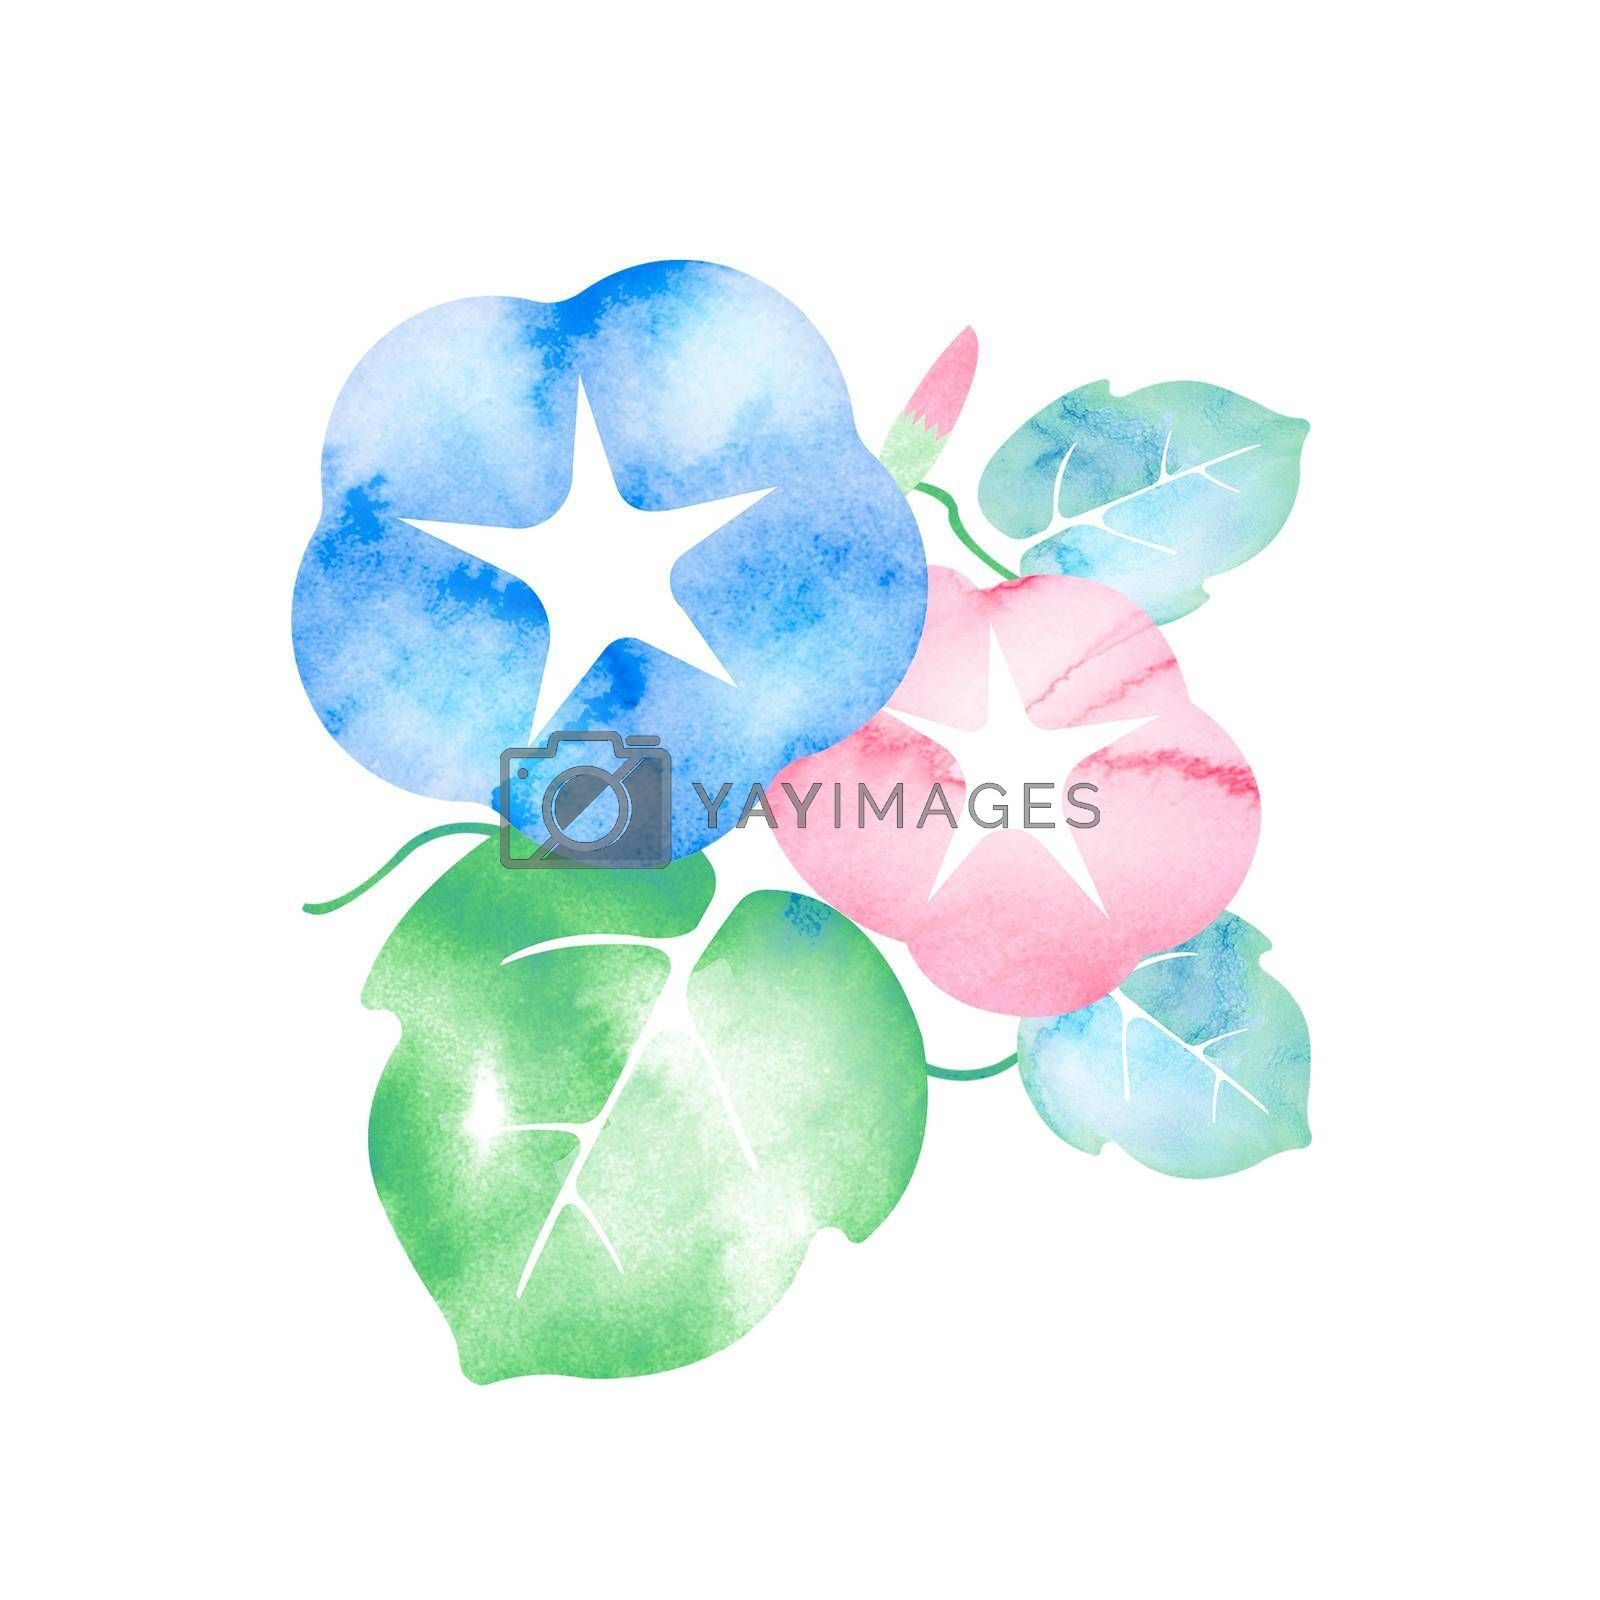 Royalty free image of Summer motif watercolor painting illustration for summer greeting card etc. | morning glory flower by barks